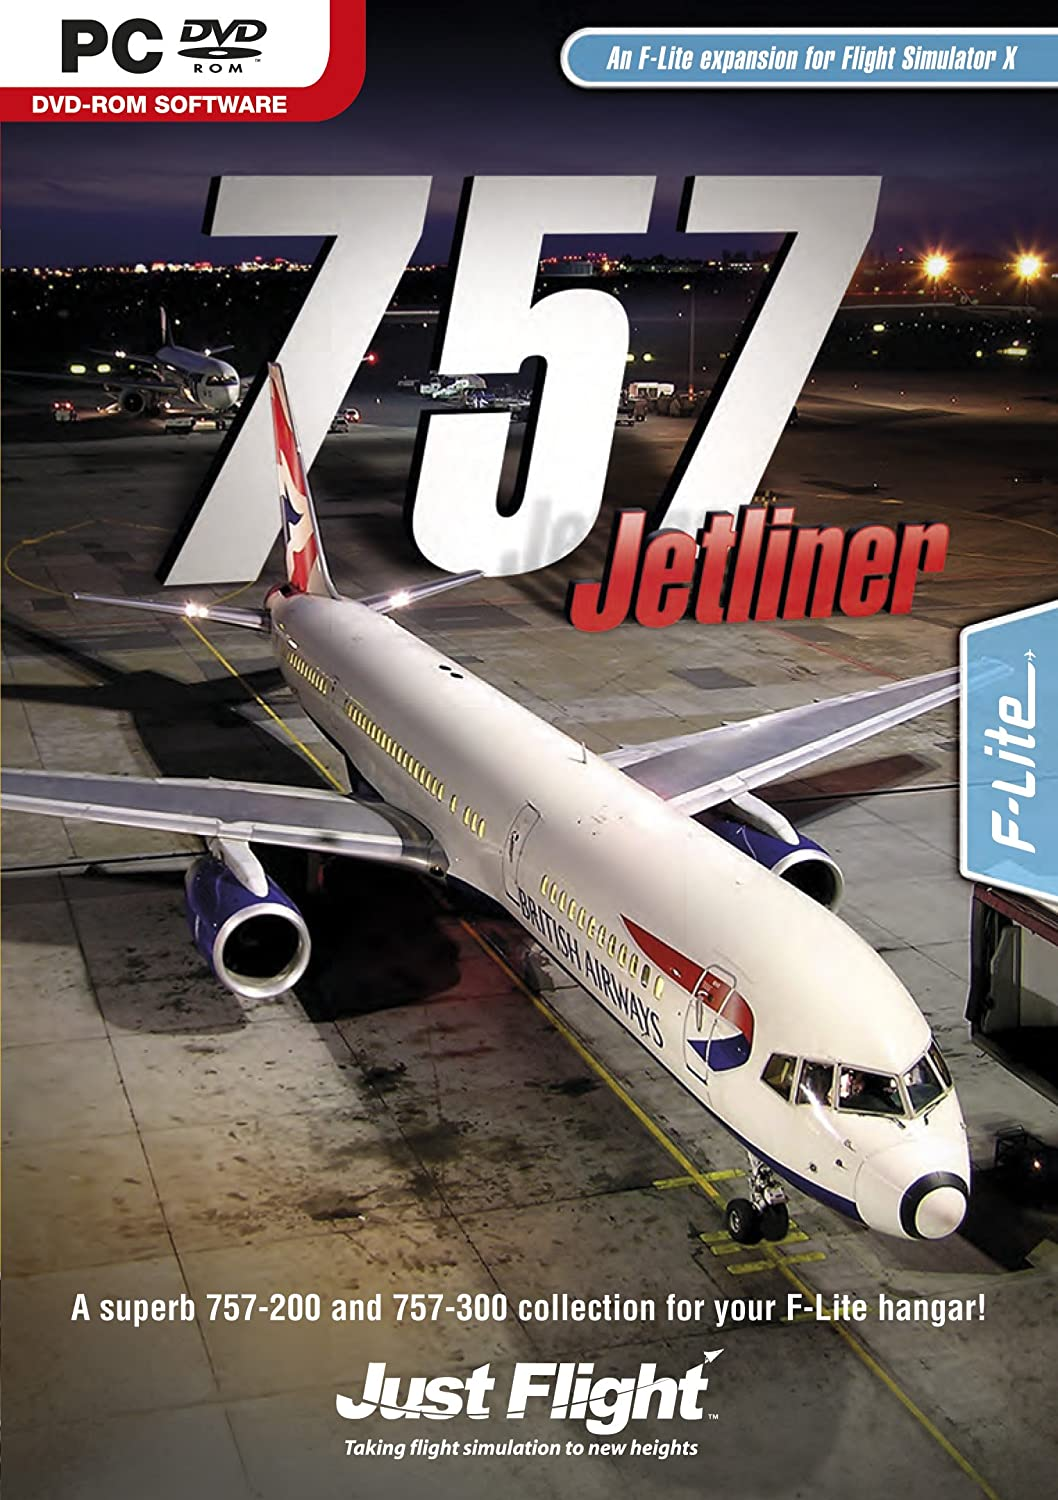 757 Jetliner English (PC DVD): Amazon co uk: PC & Video Games